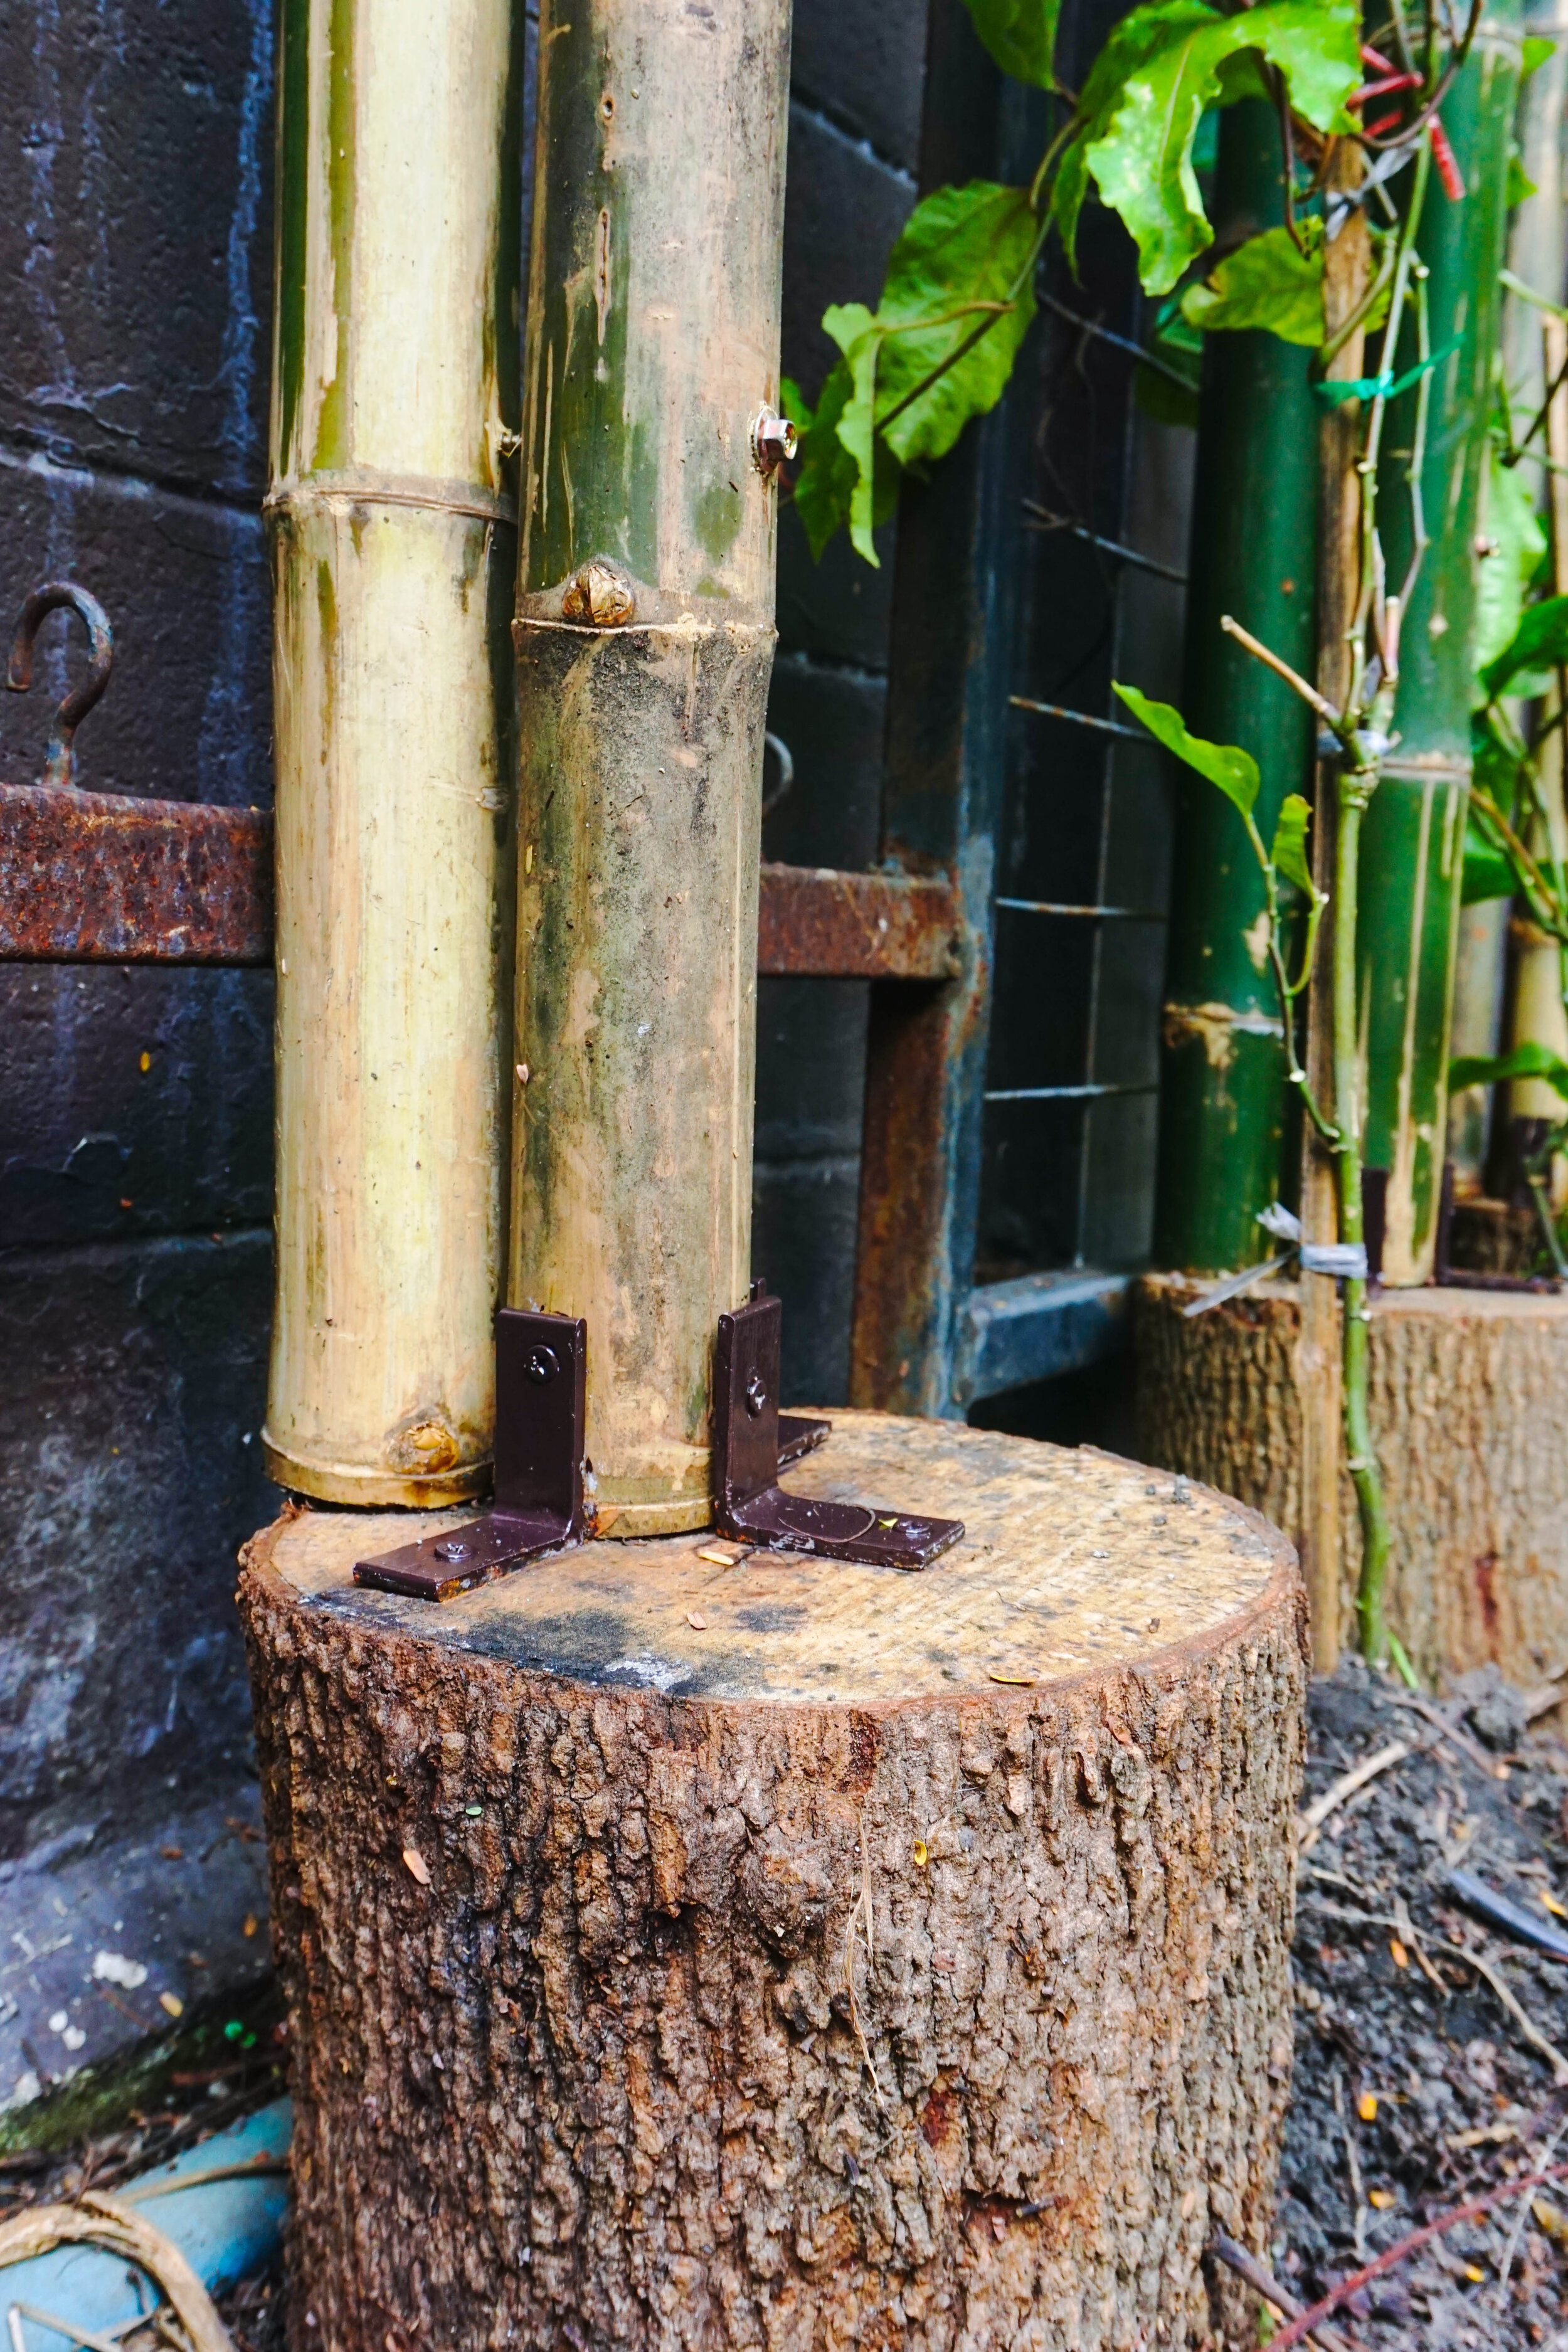 Bo.lan Edible Garden: ZONE H - The Fresh Air Tunnel built with bamboo and farmed tamarind logs